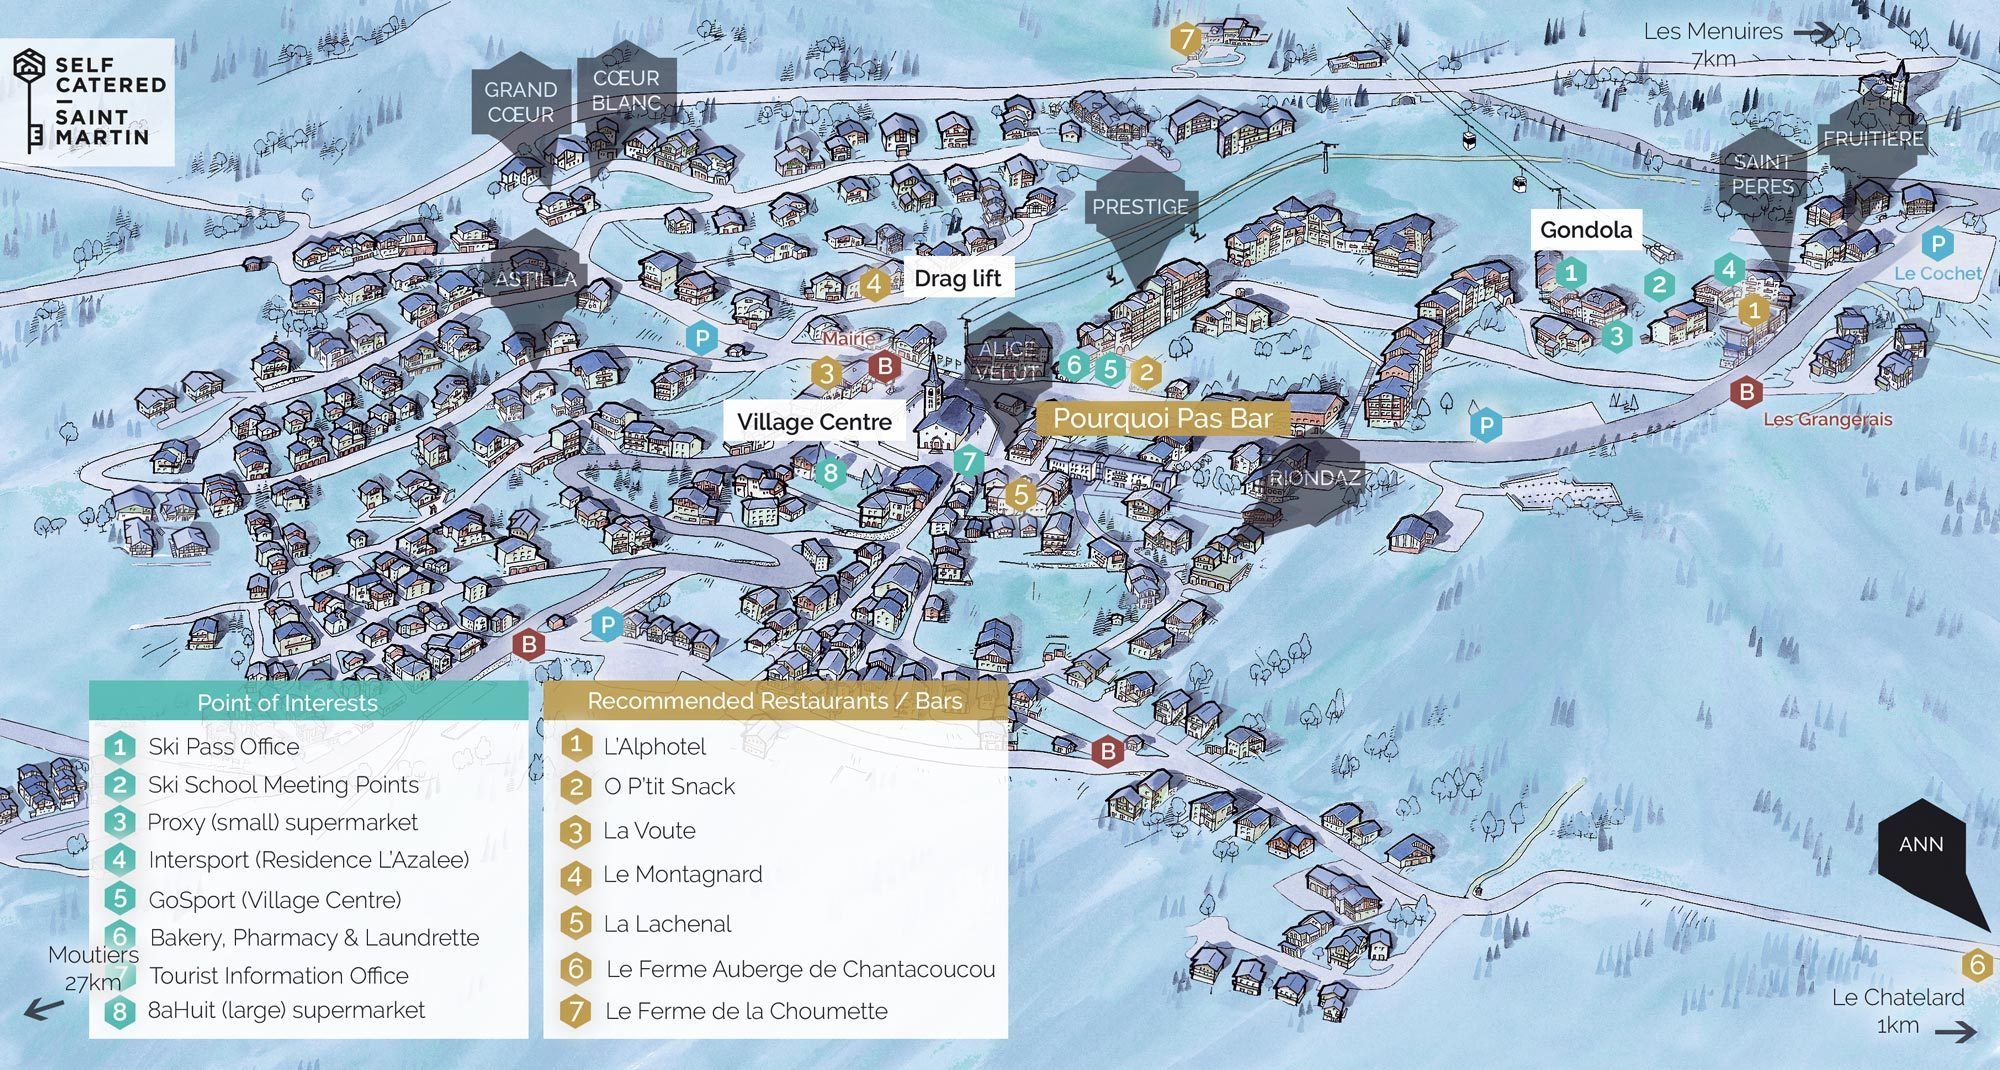 Chalet Ann in St Martin de Belleville | Resort Map | Self Catered - Saint Martin